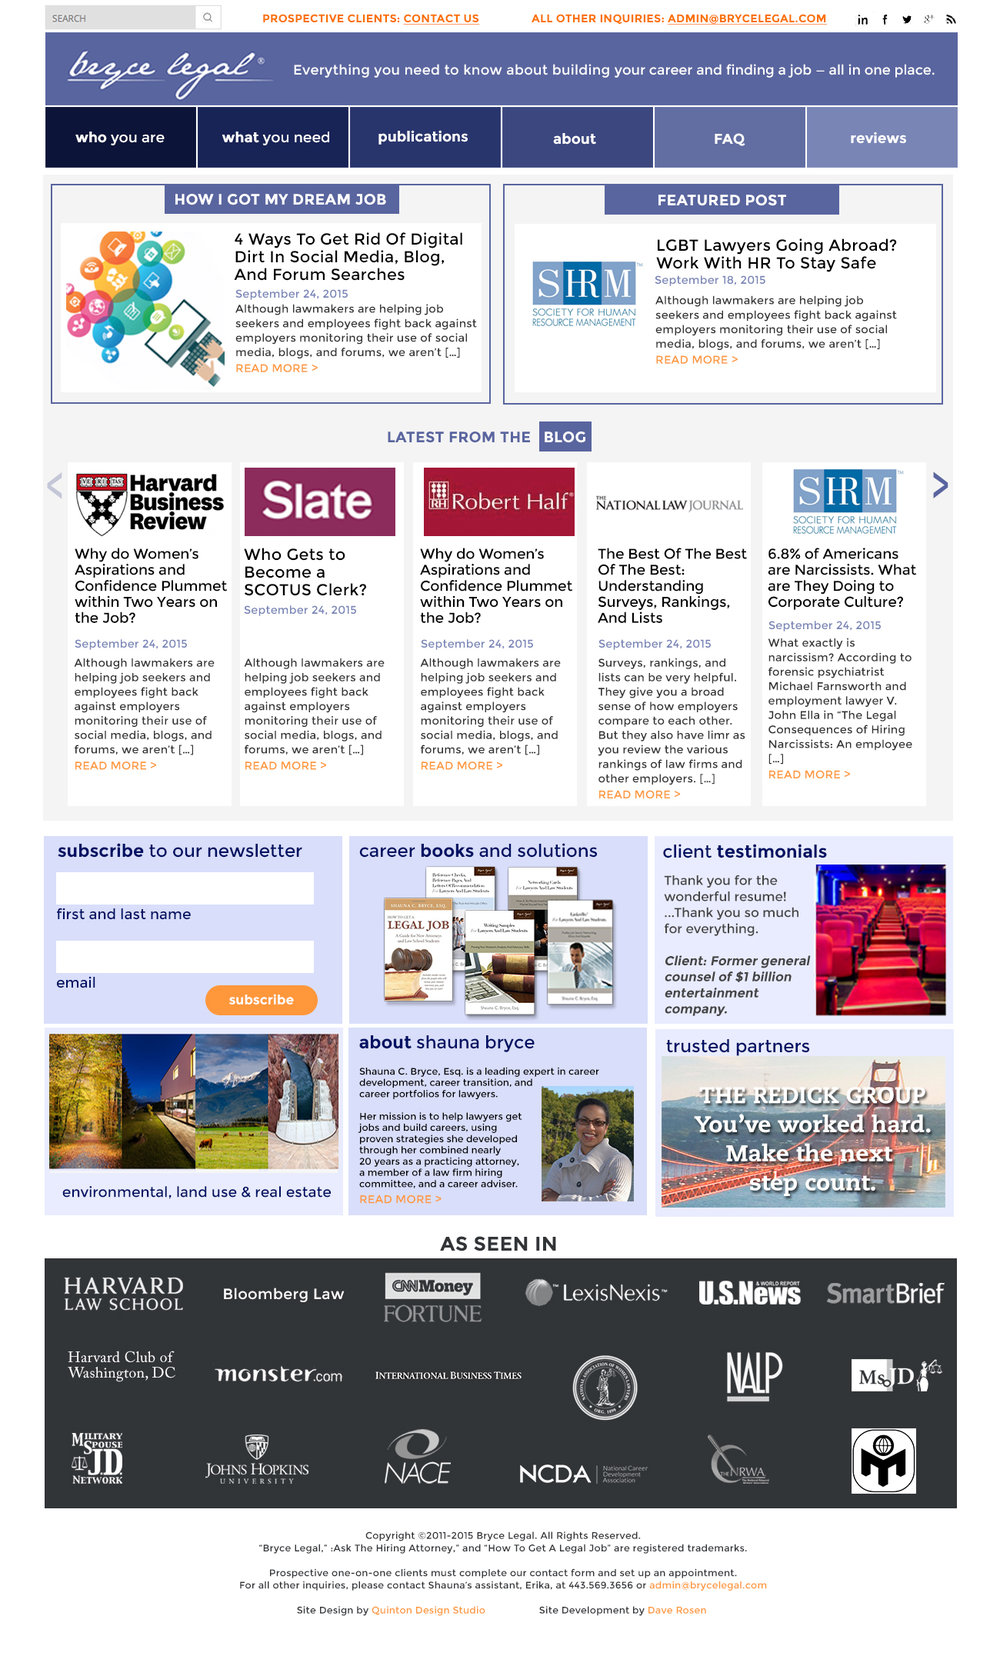 Home page design concept.  I designed the home page to be blog-driven because my client so frequently writes and posts across a variety of web sites, and this is her most useful marketing tool. The card layout below the blog displays a mixture of call to action, product links, client/colleague reviews, and partner advertisements which can be modified as desired.